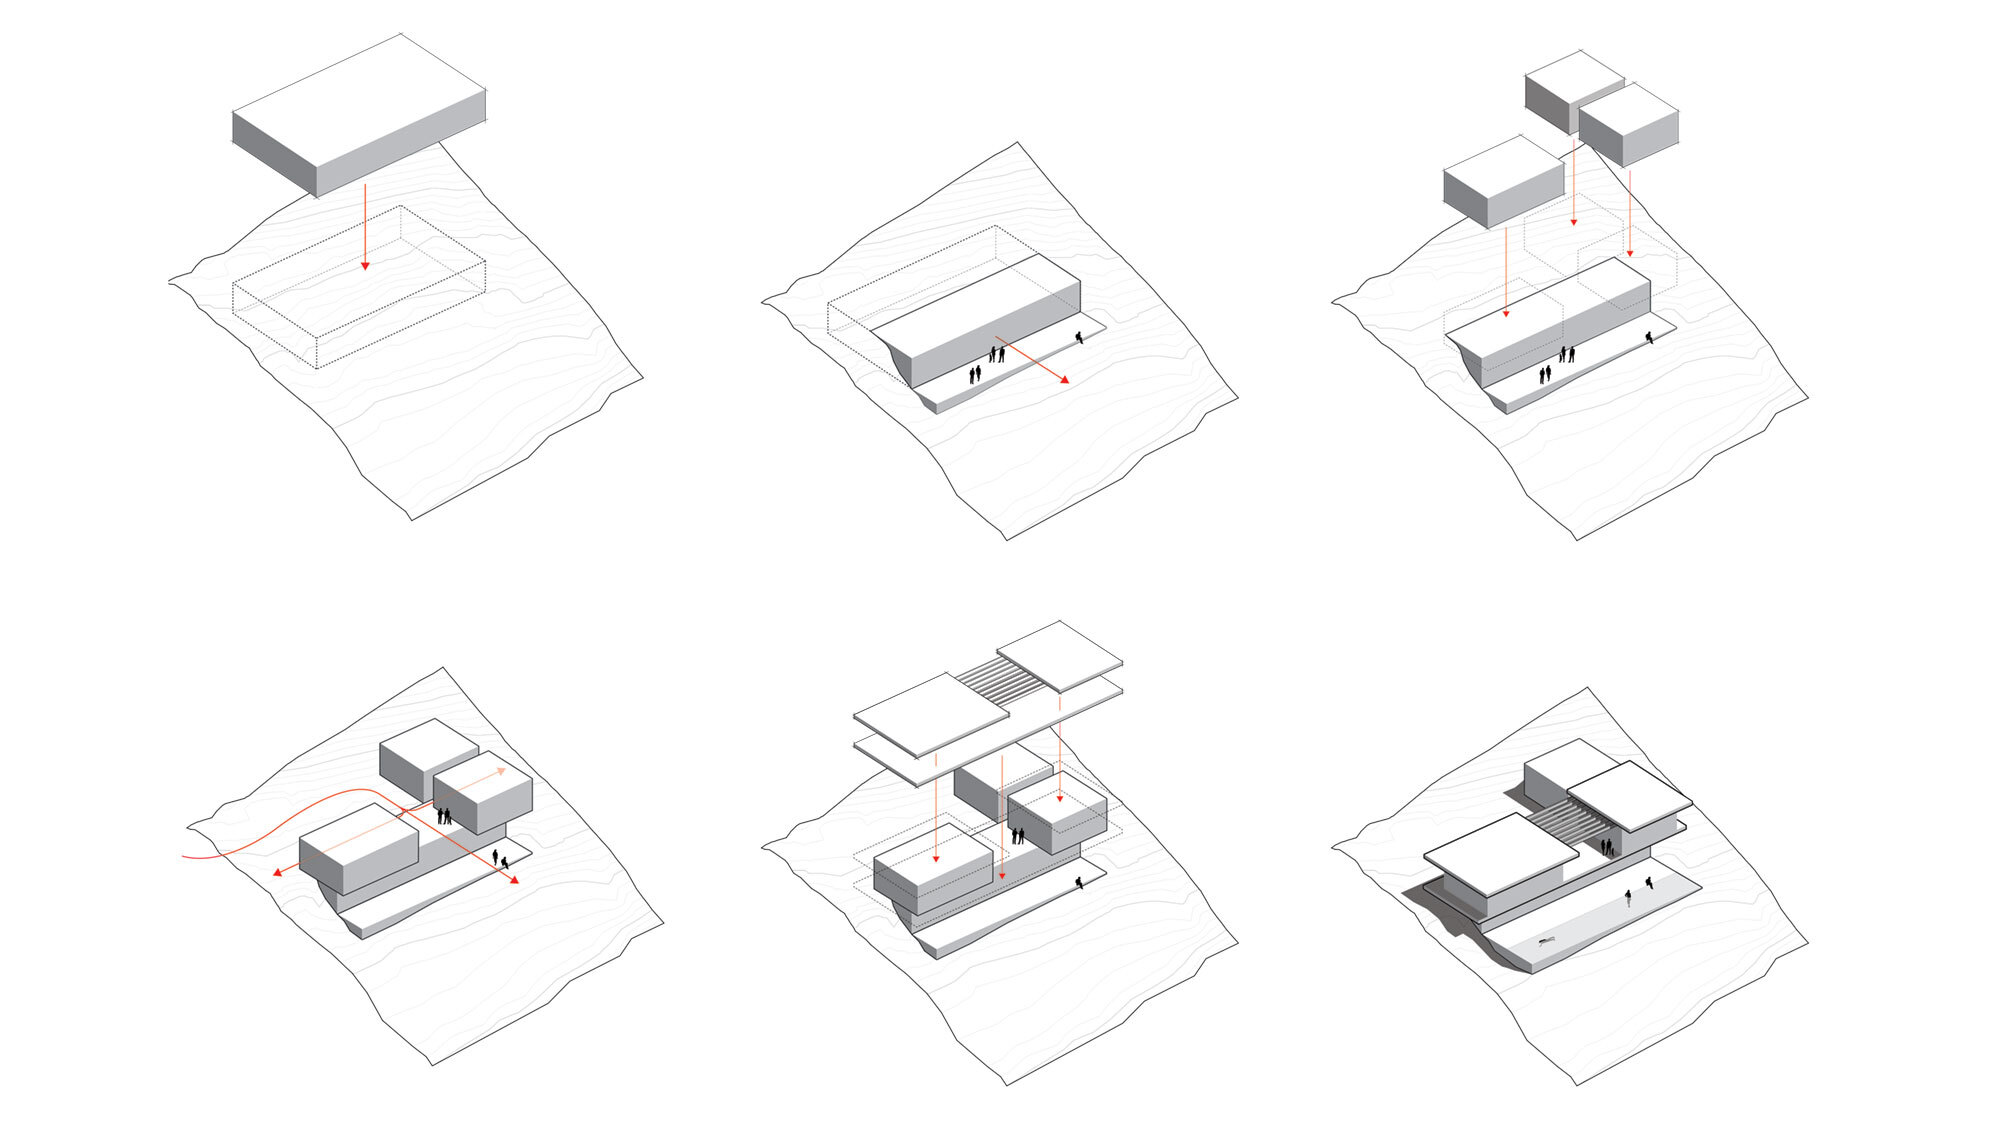 CCY Architects Pavilion House Working Diagrams